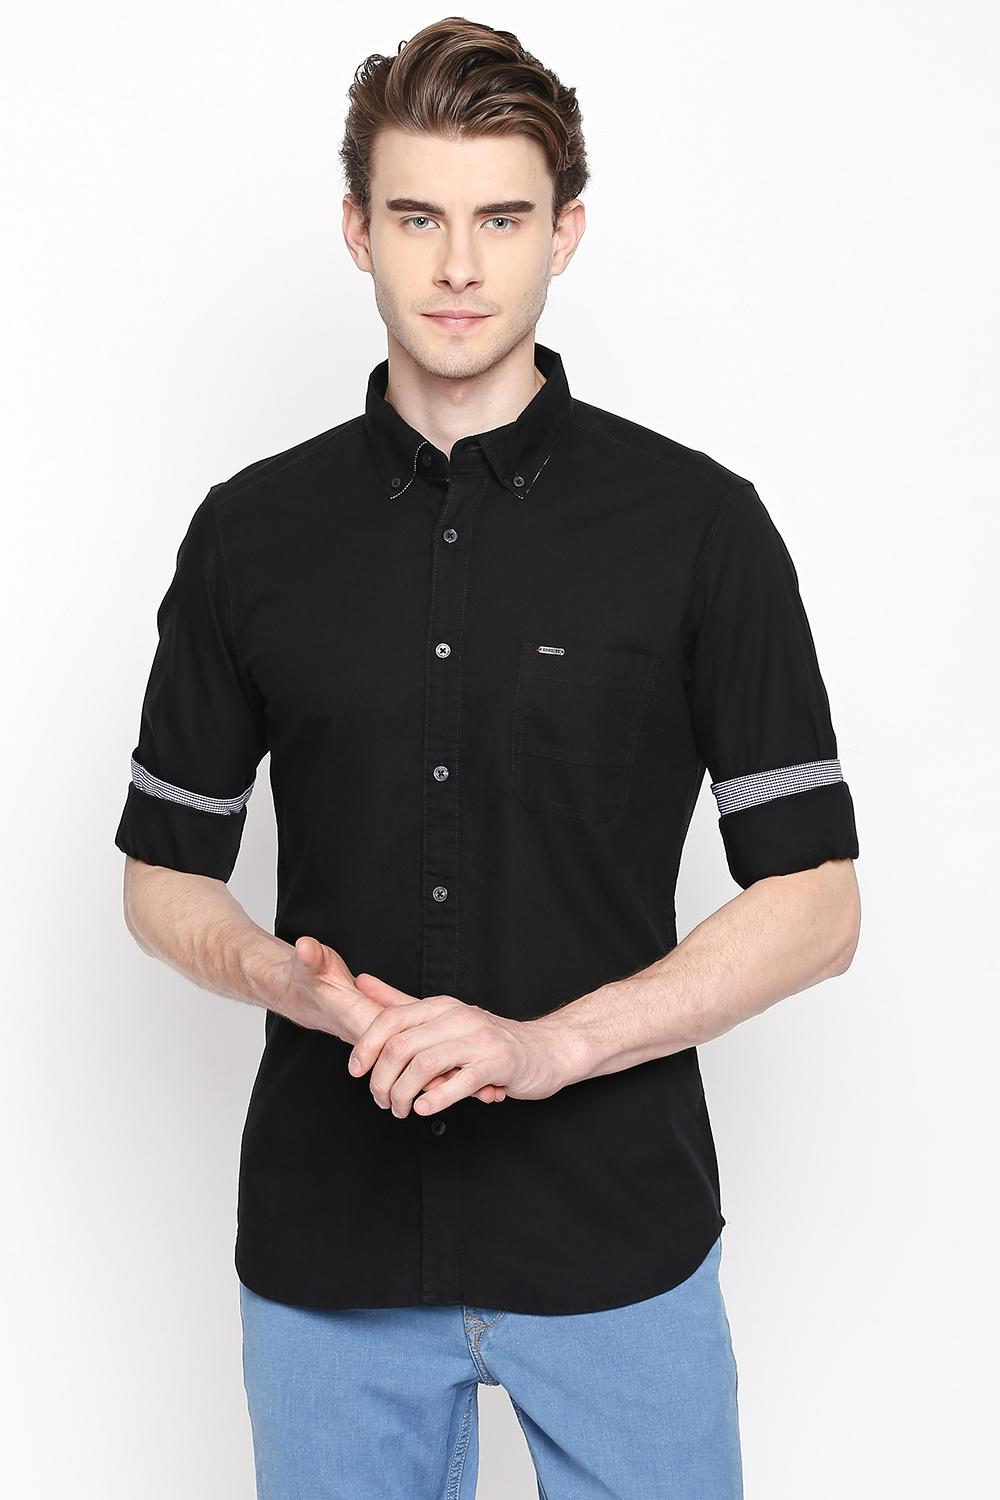 752bc9d8 Buy Mens Casual and Formal Shirts Online with Affordable Price in ...